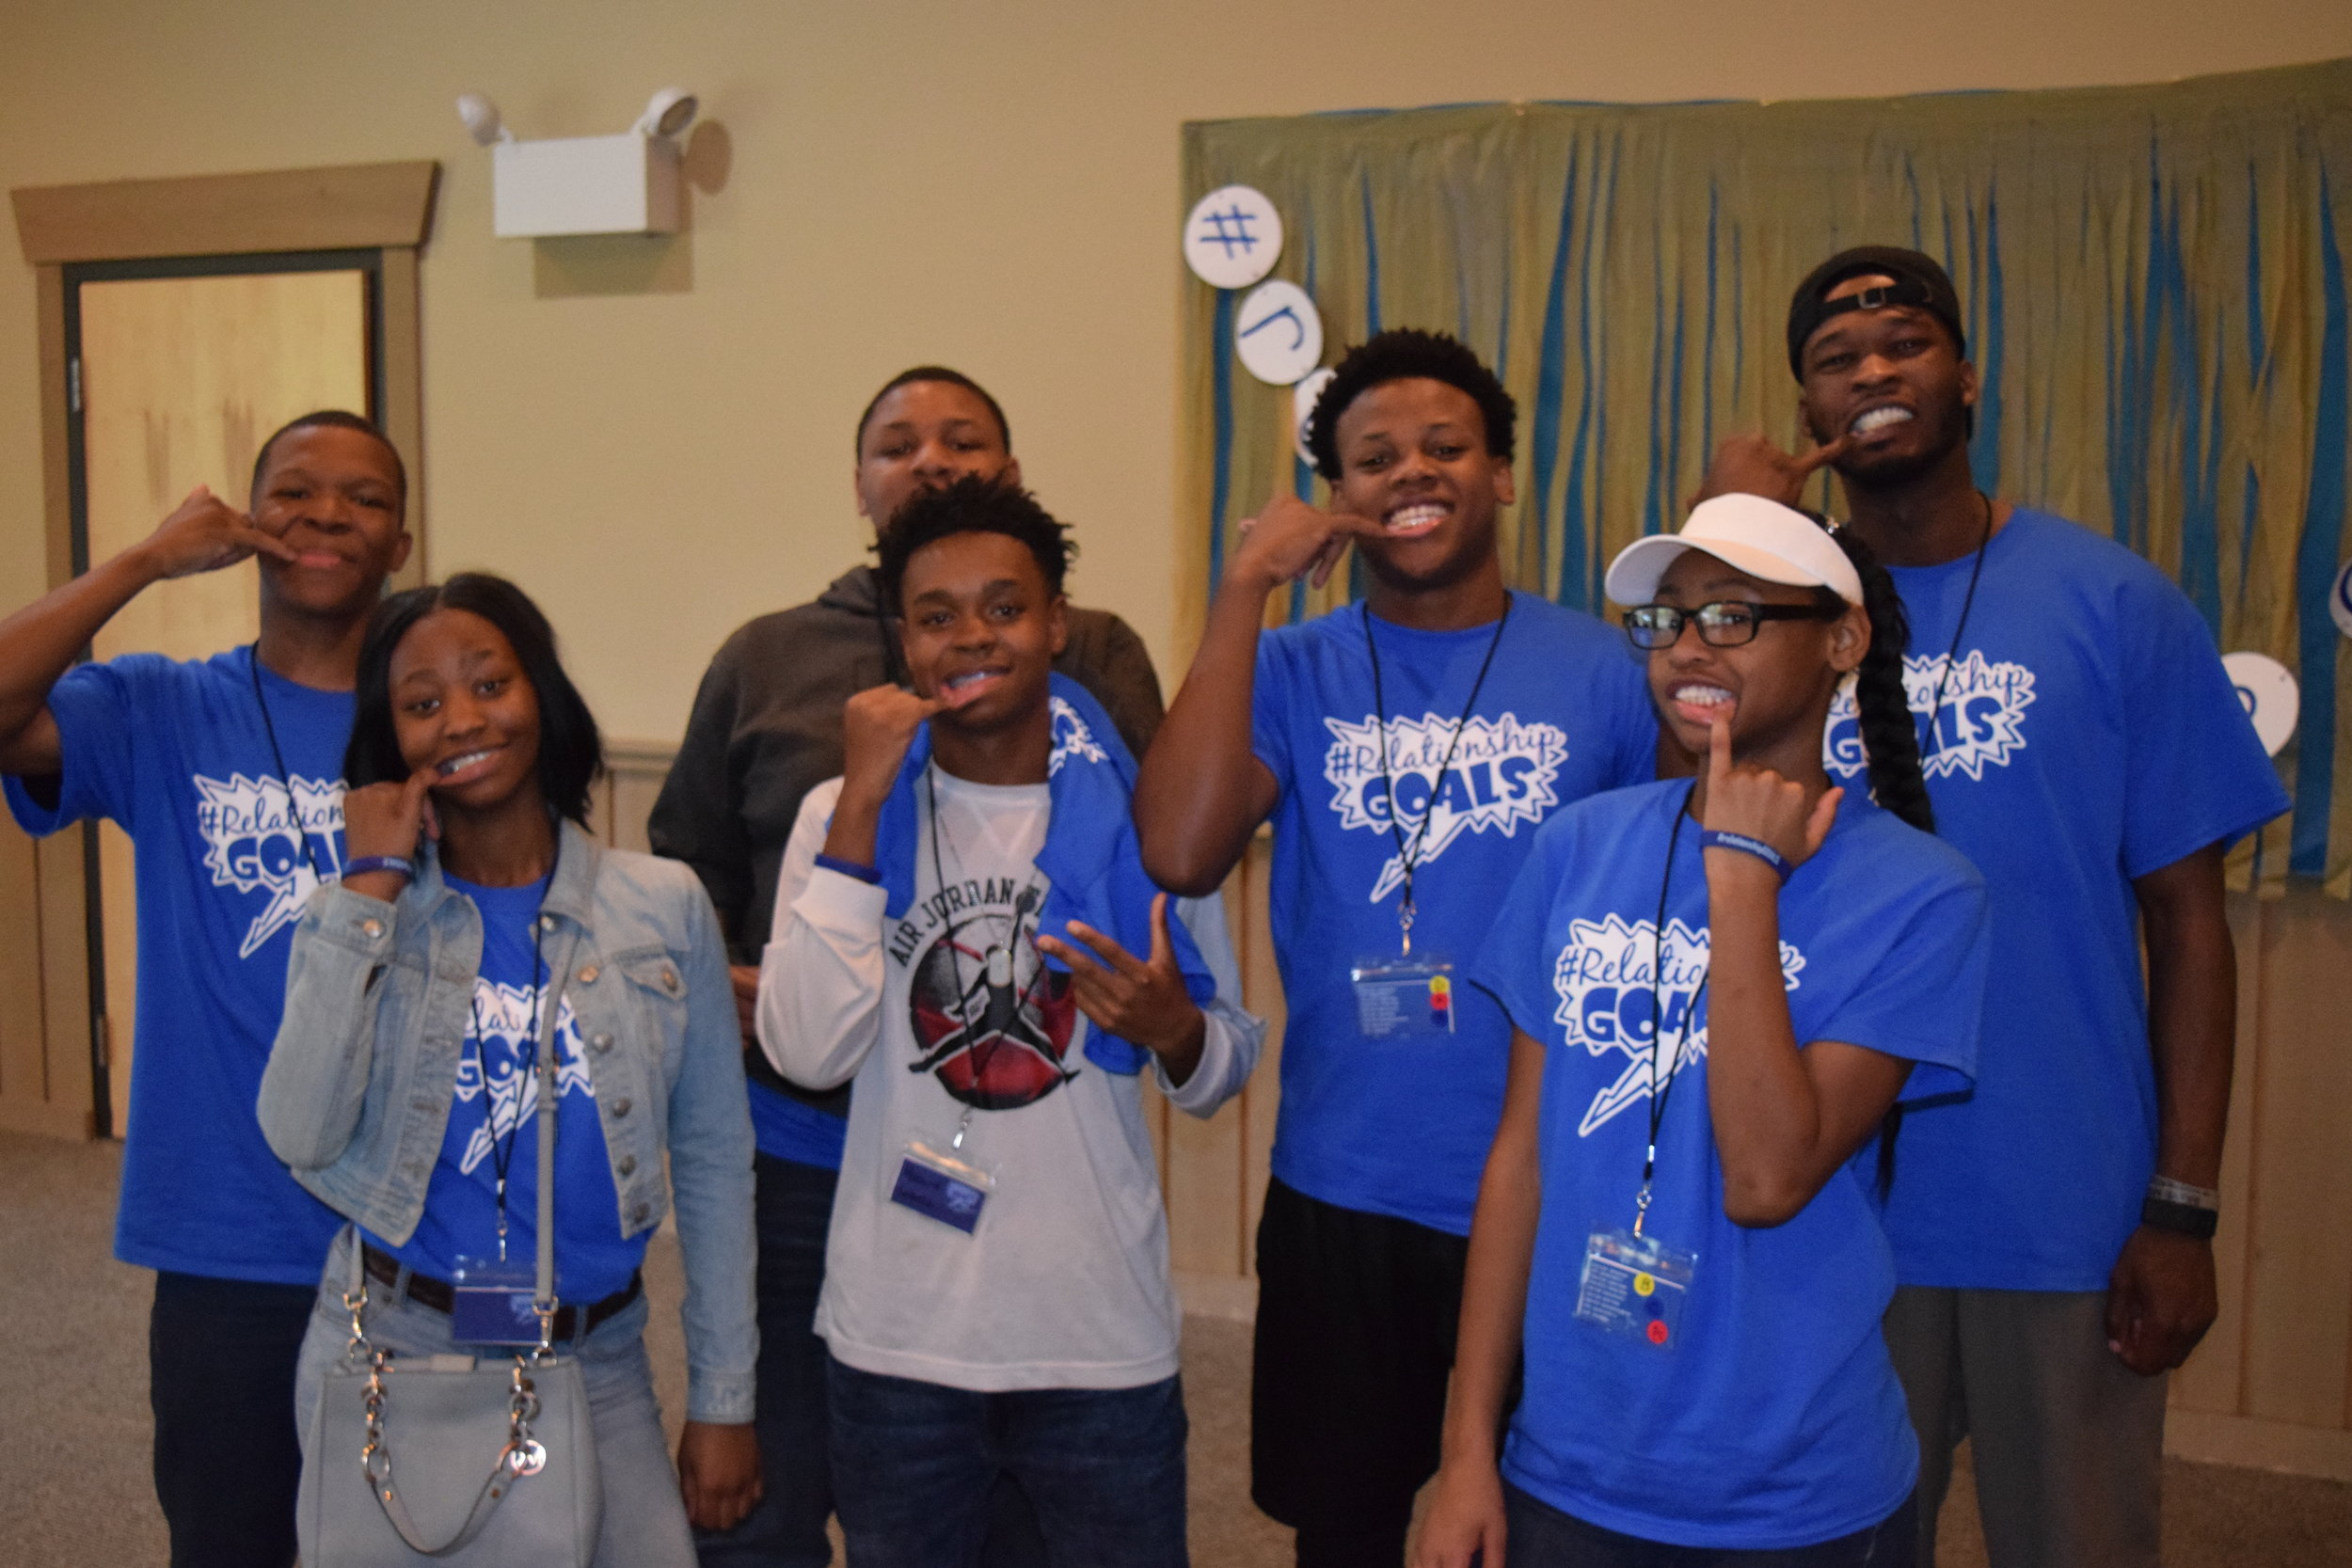 - The SOUL program offered me the tools to do youth ministry healthily, effectively, and long term.— Darius Person, SOUL Alumni